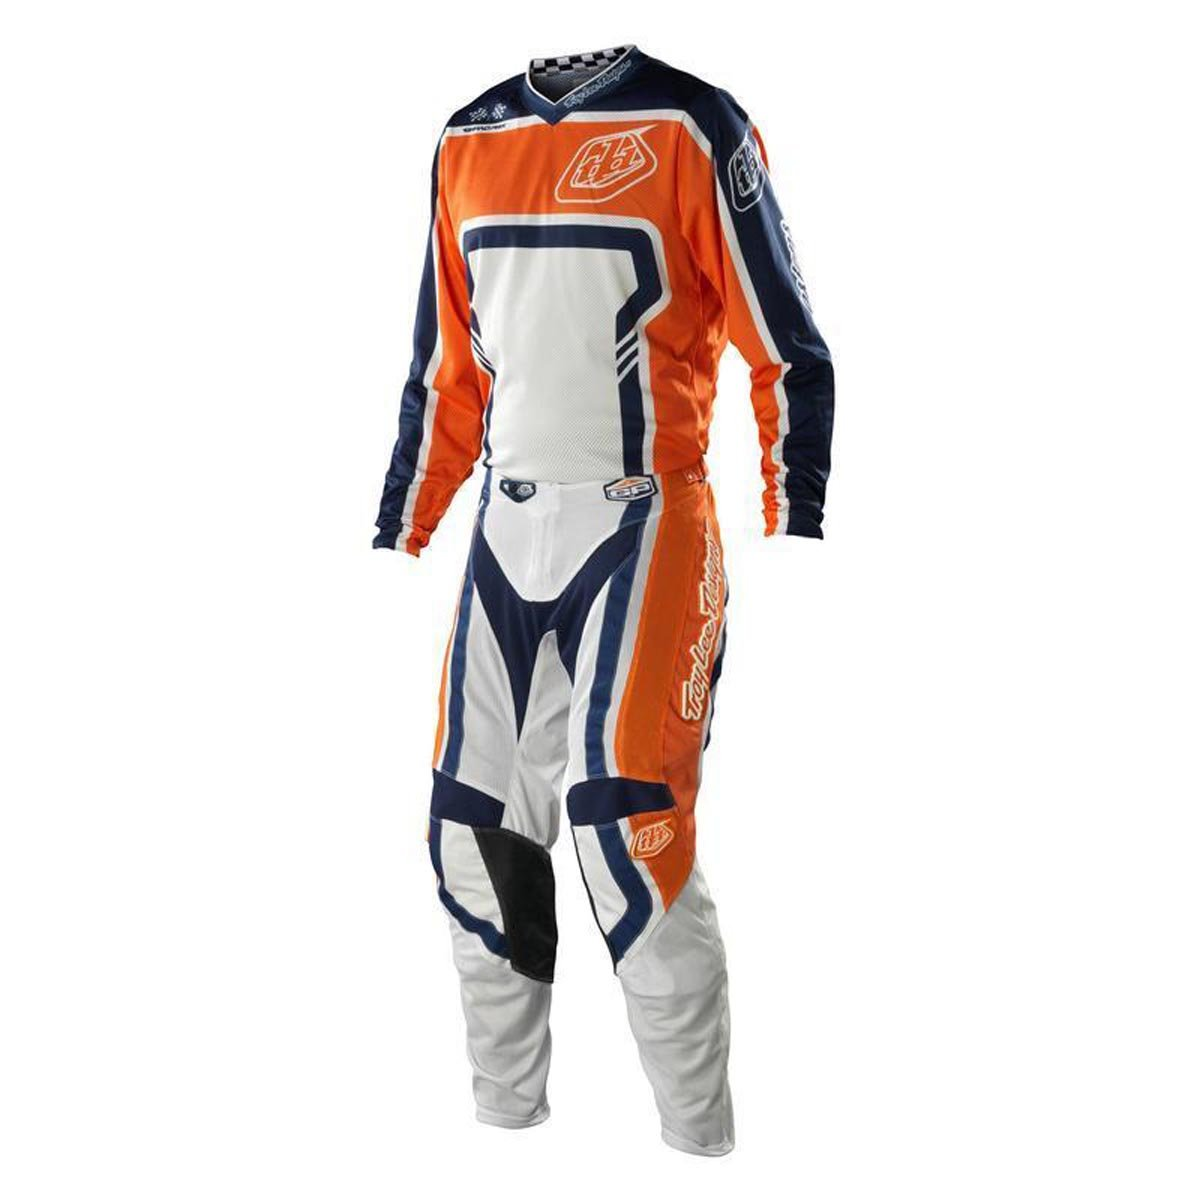 Troy Lee Designs TLD GP Air Factory Gear Set Orange Navy White Jersey and Pants Combo (Medium Jersey/32 Pants)